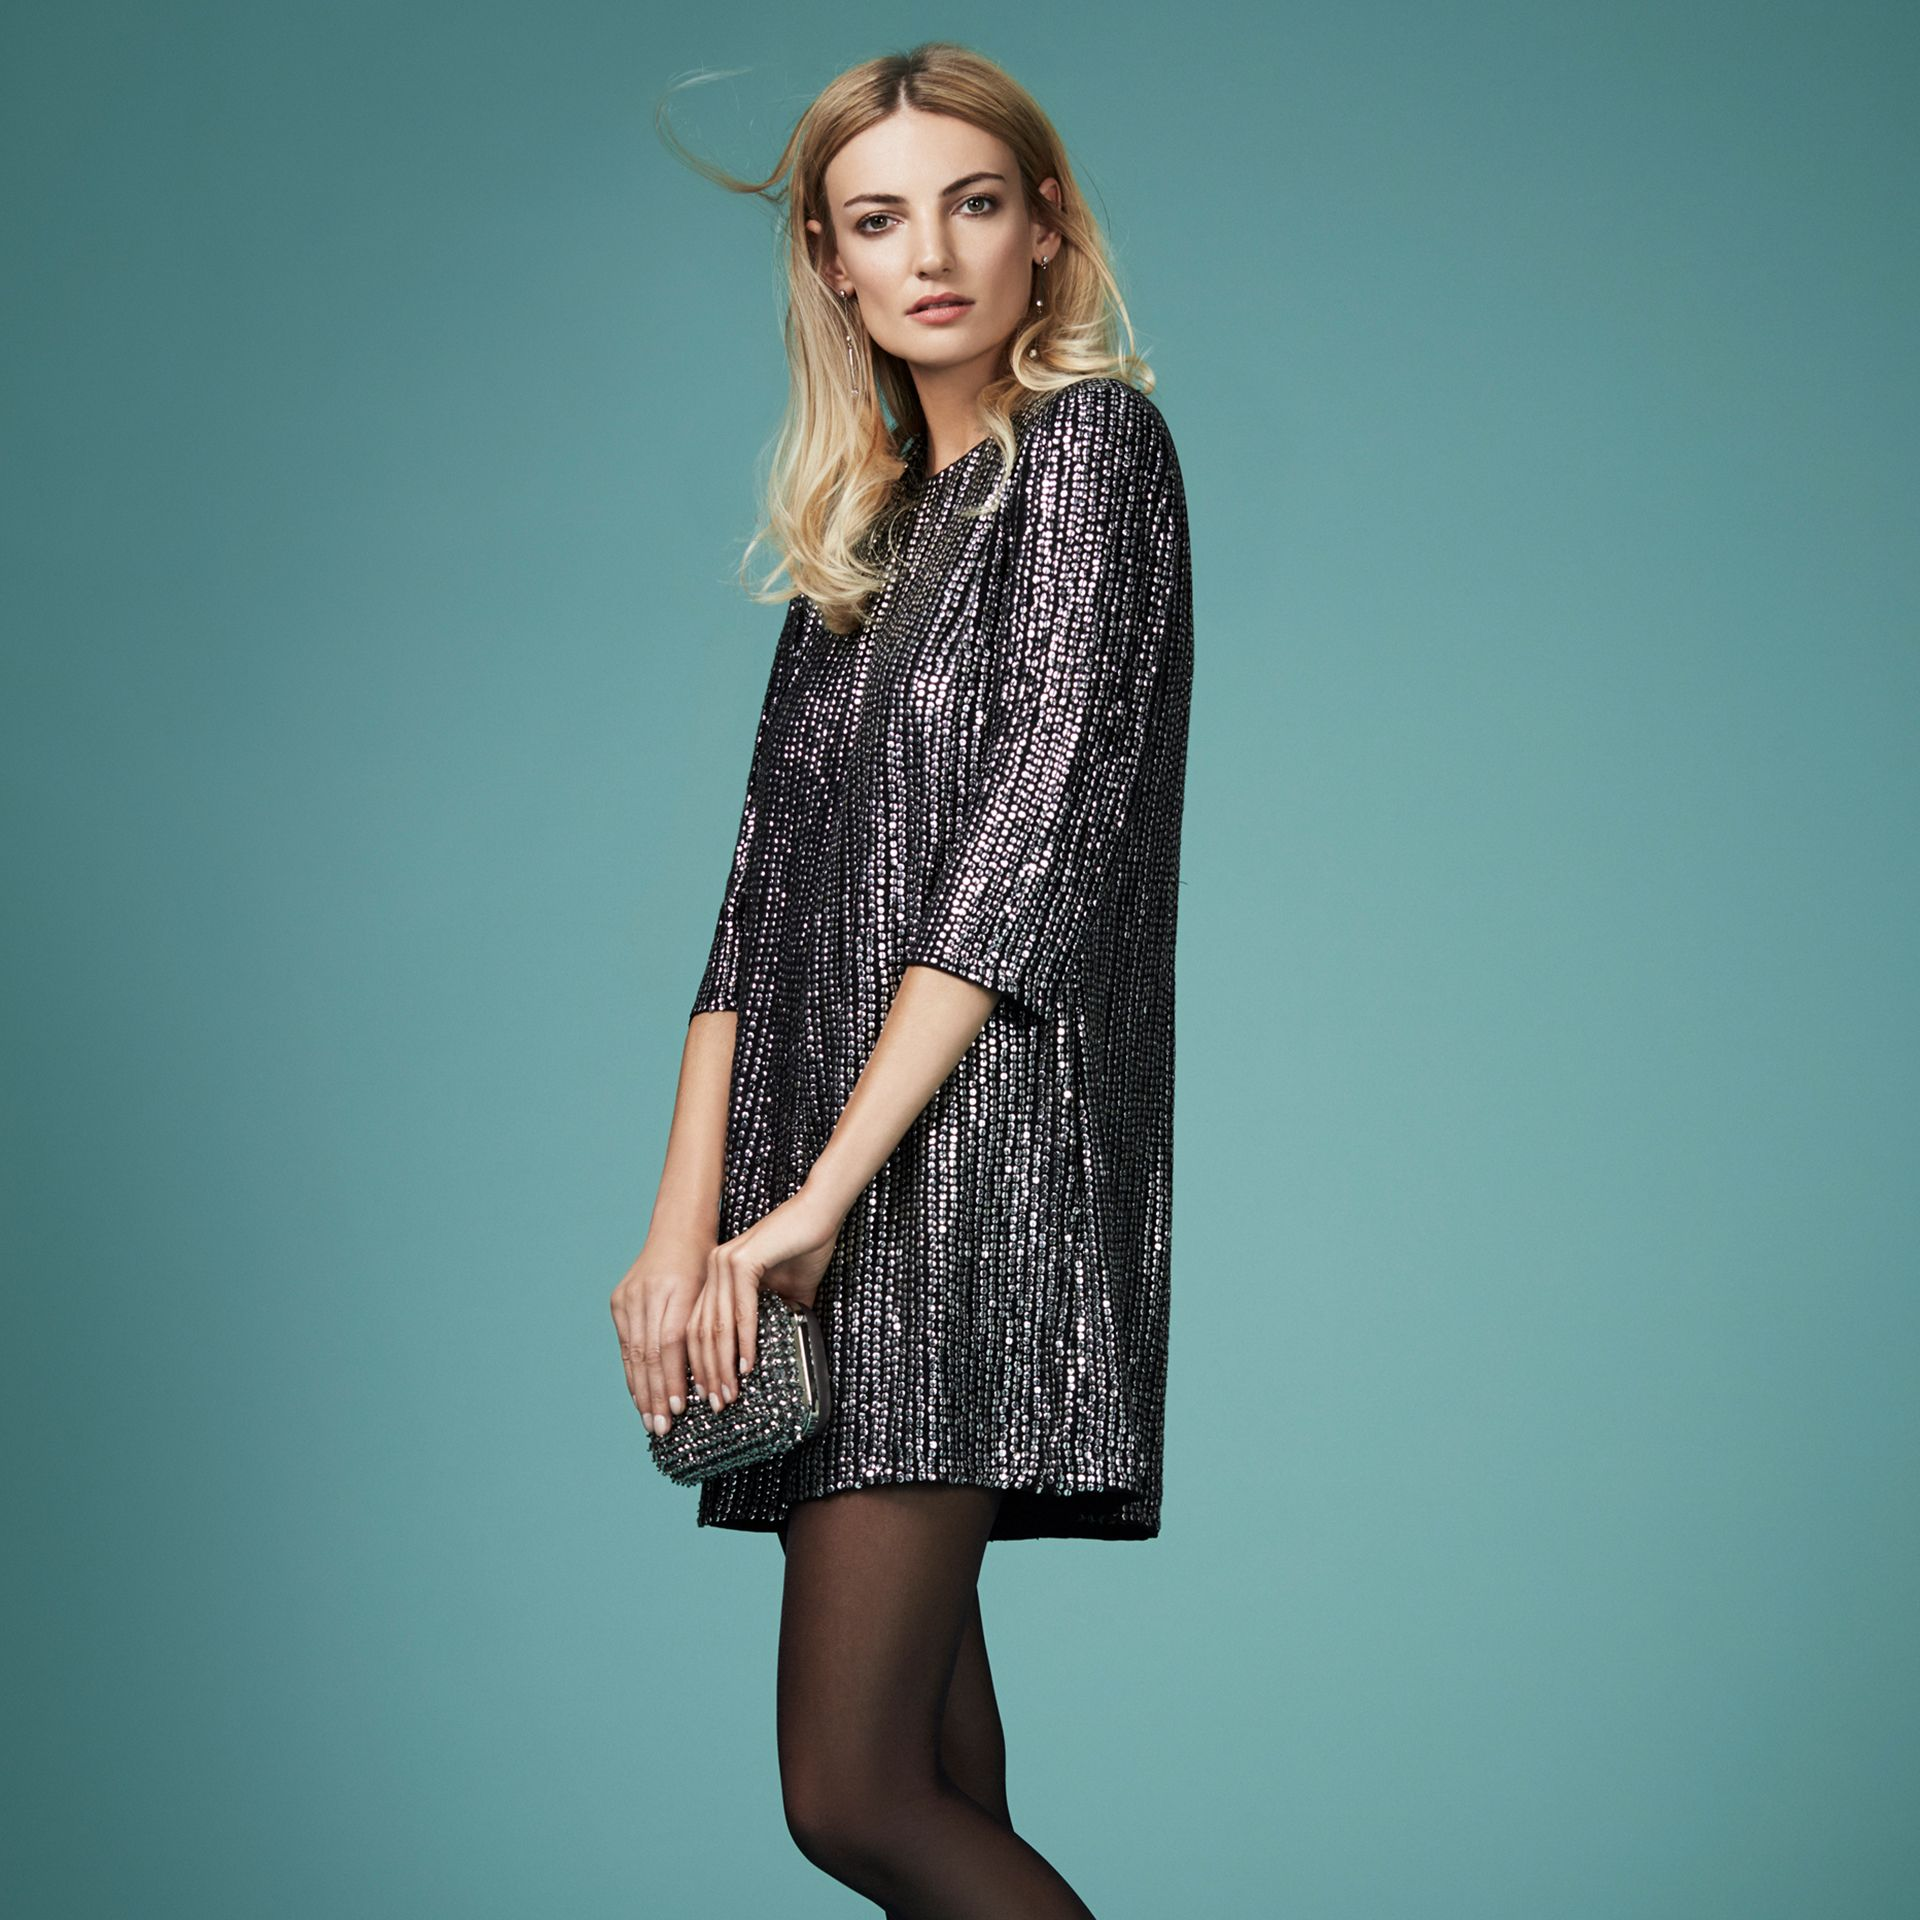 French Connection Desiree Disco Playsuit, £190